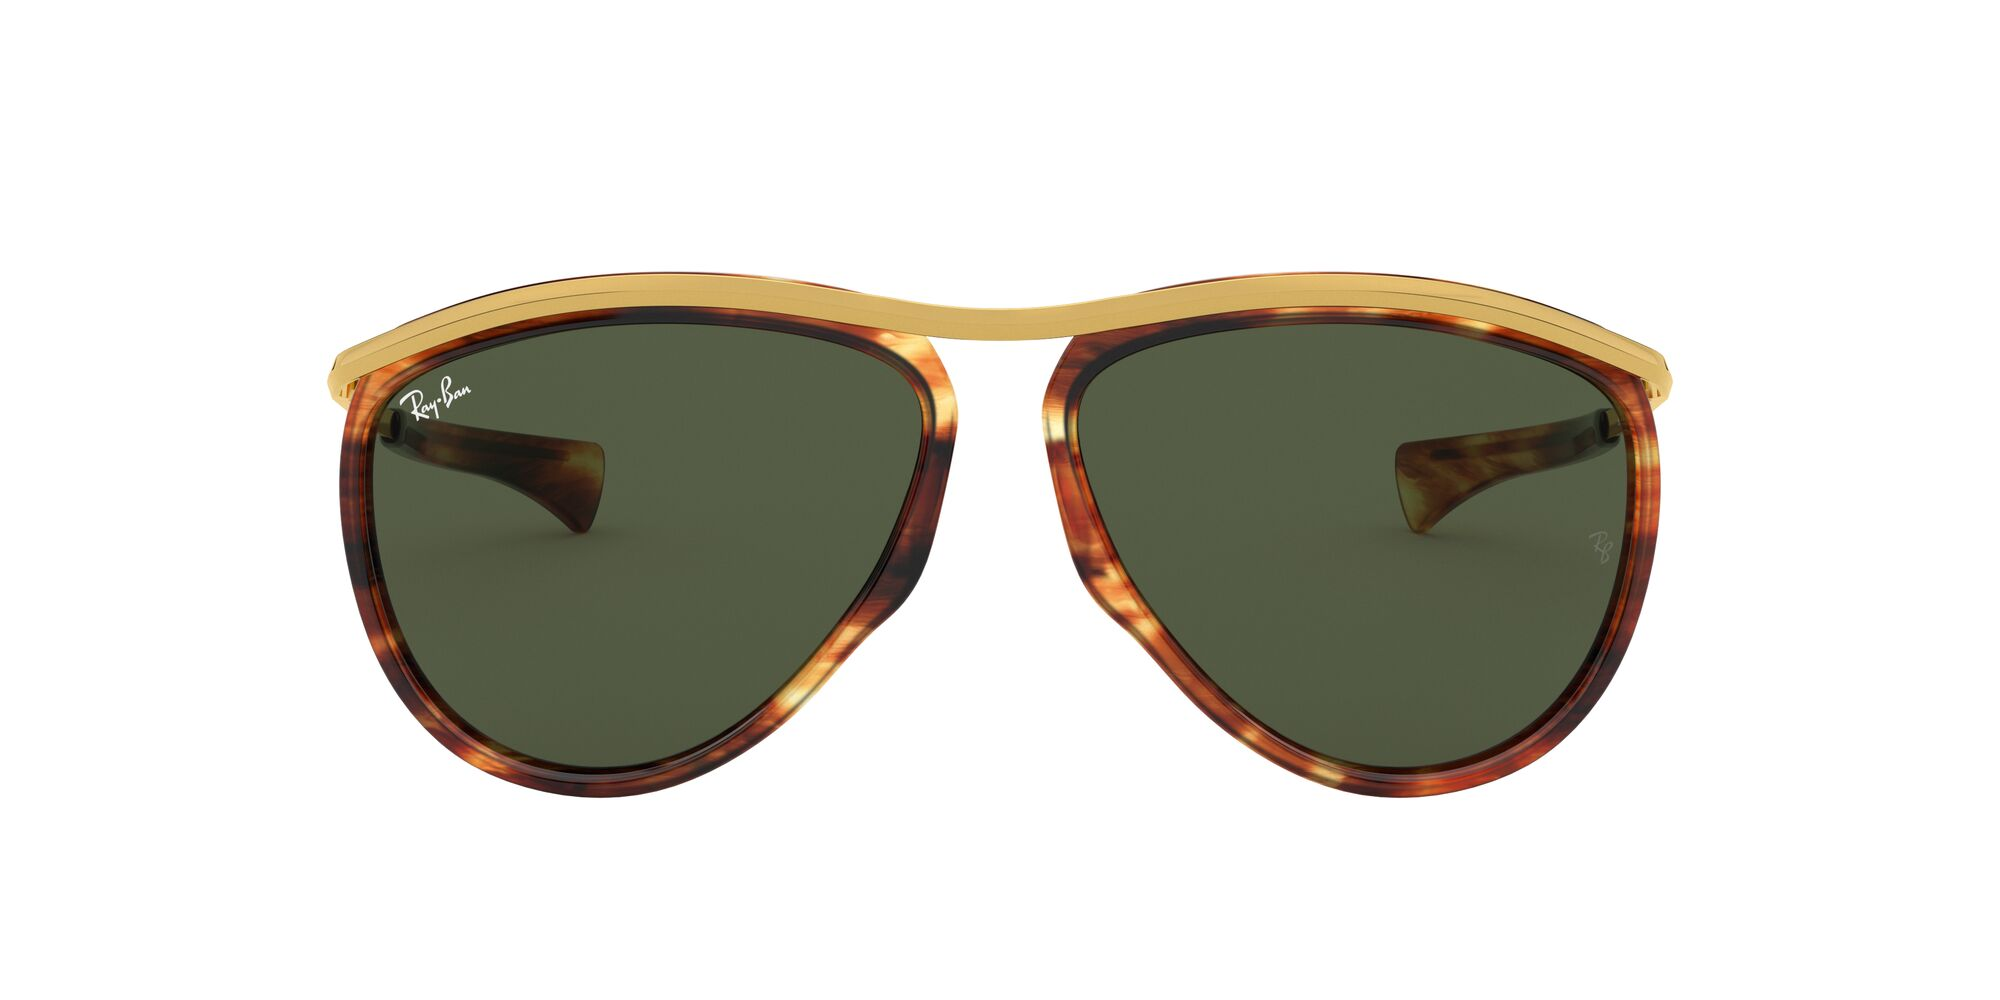 Front Ray-Ban Ray-Ban 0RB2219 954/31 59/13 Bruin, Goud/Groen